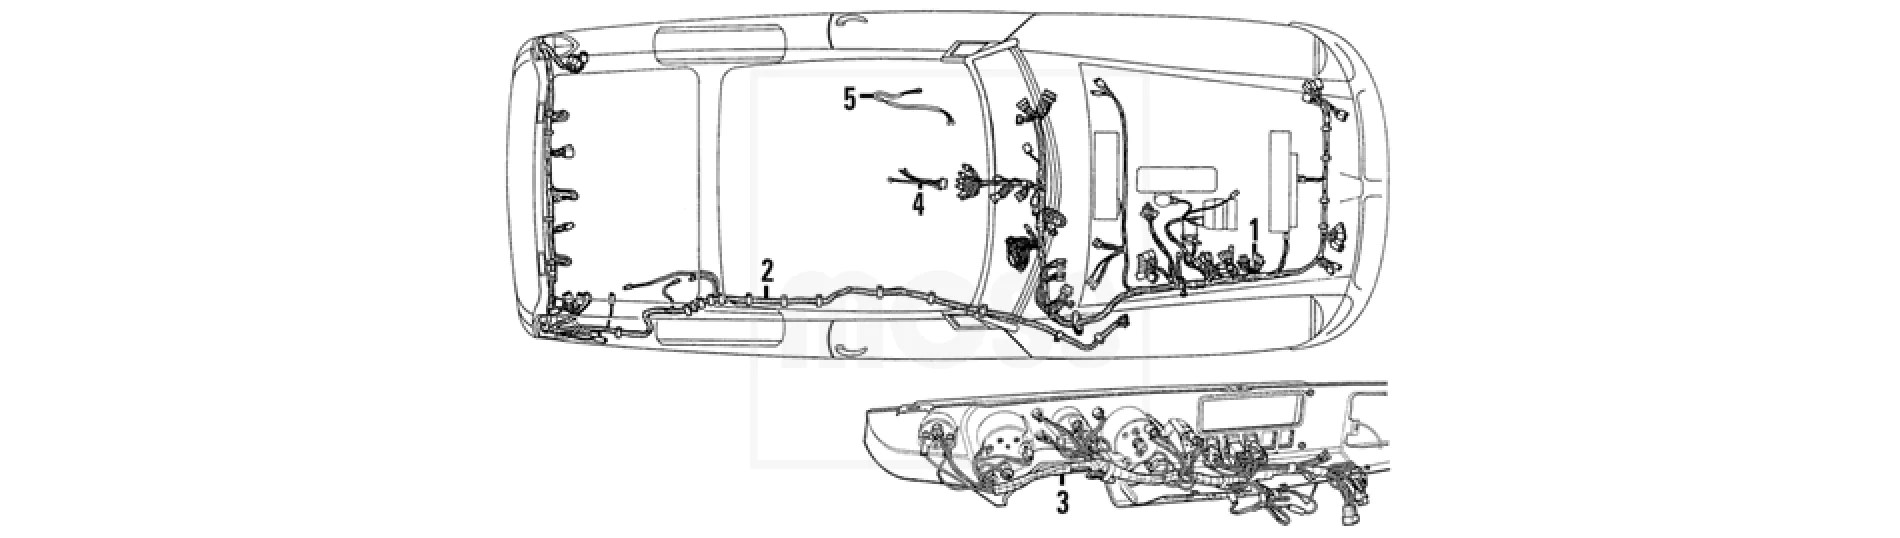 hight resolution of 68 mgb wiring diagram